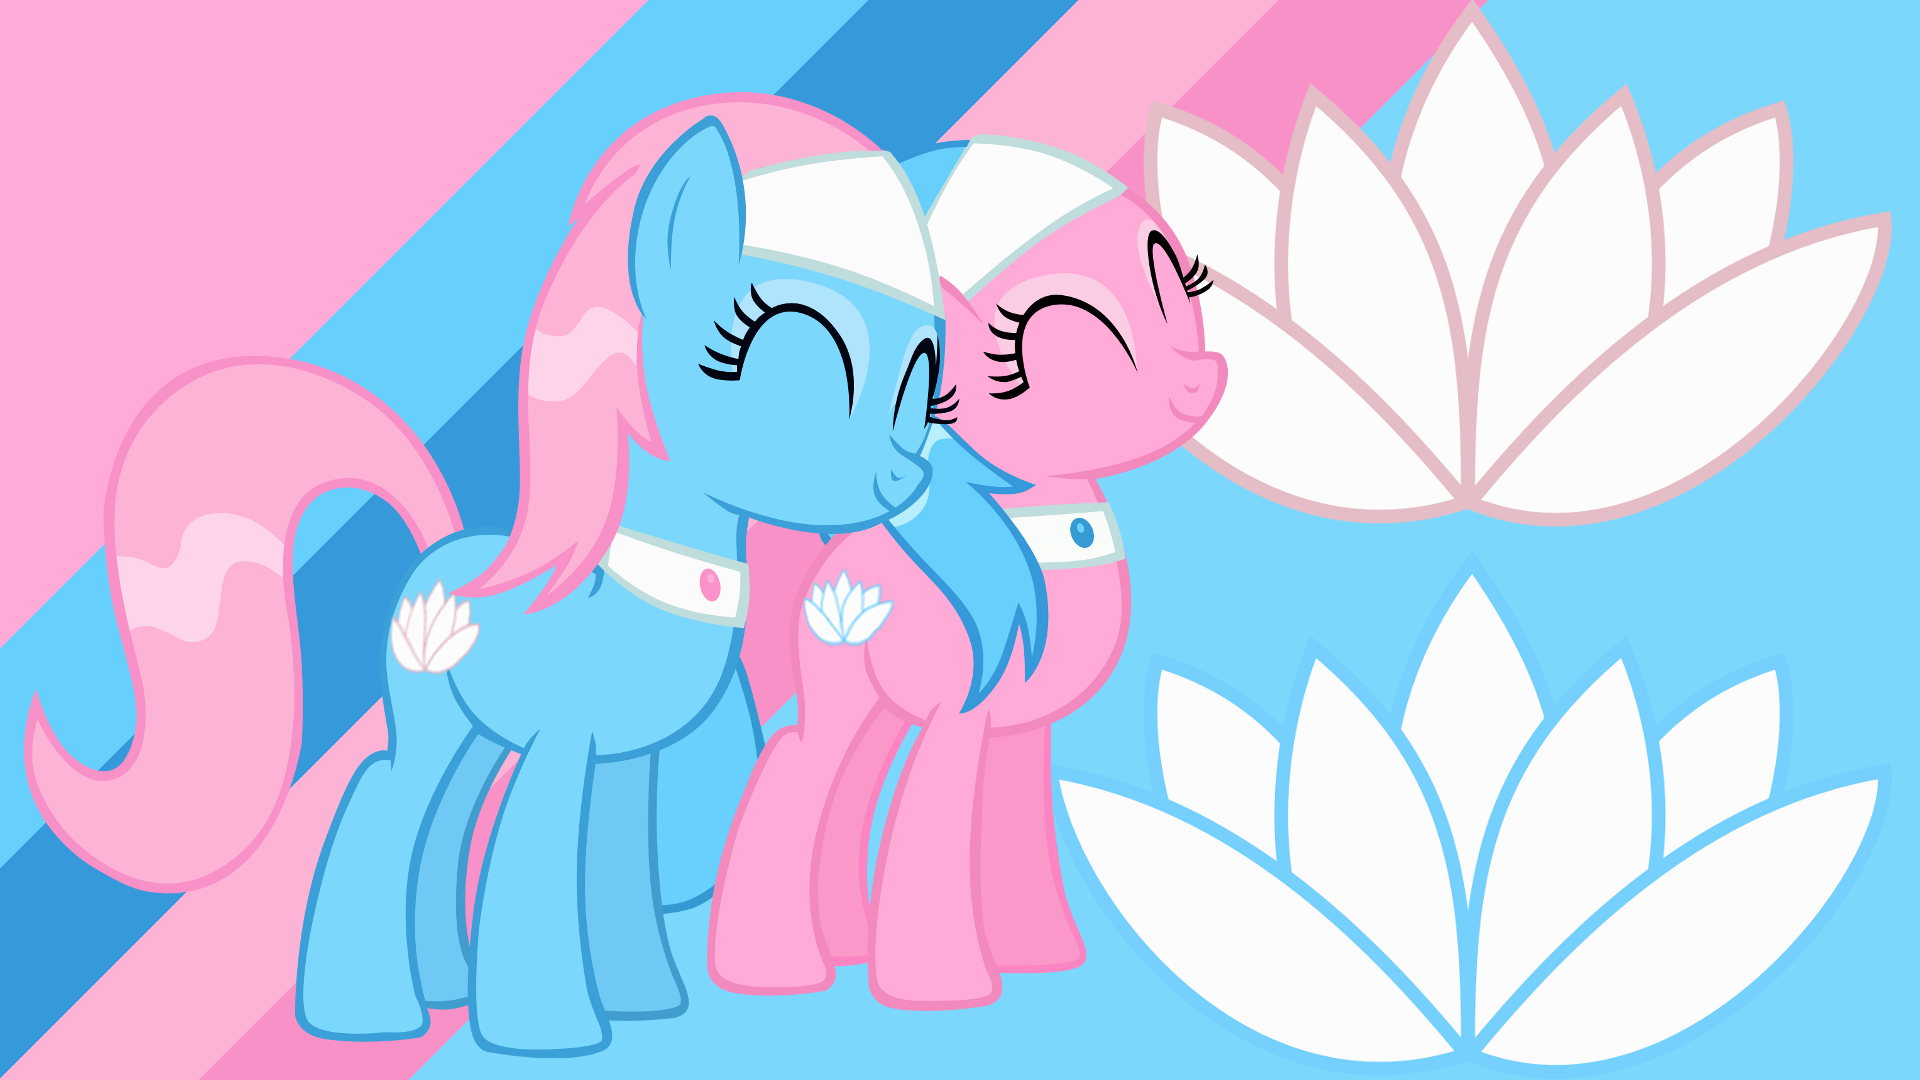 Minimalist Wallpaper 86: Aloe and Lotus by PDPie, Softfang and The-Smiling-Pony